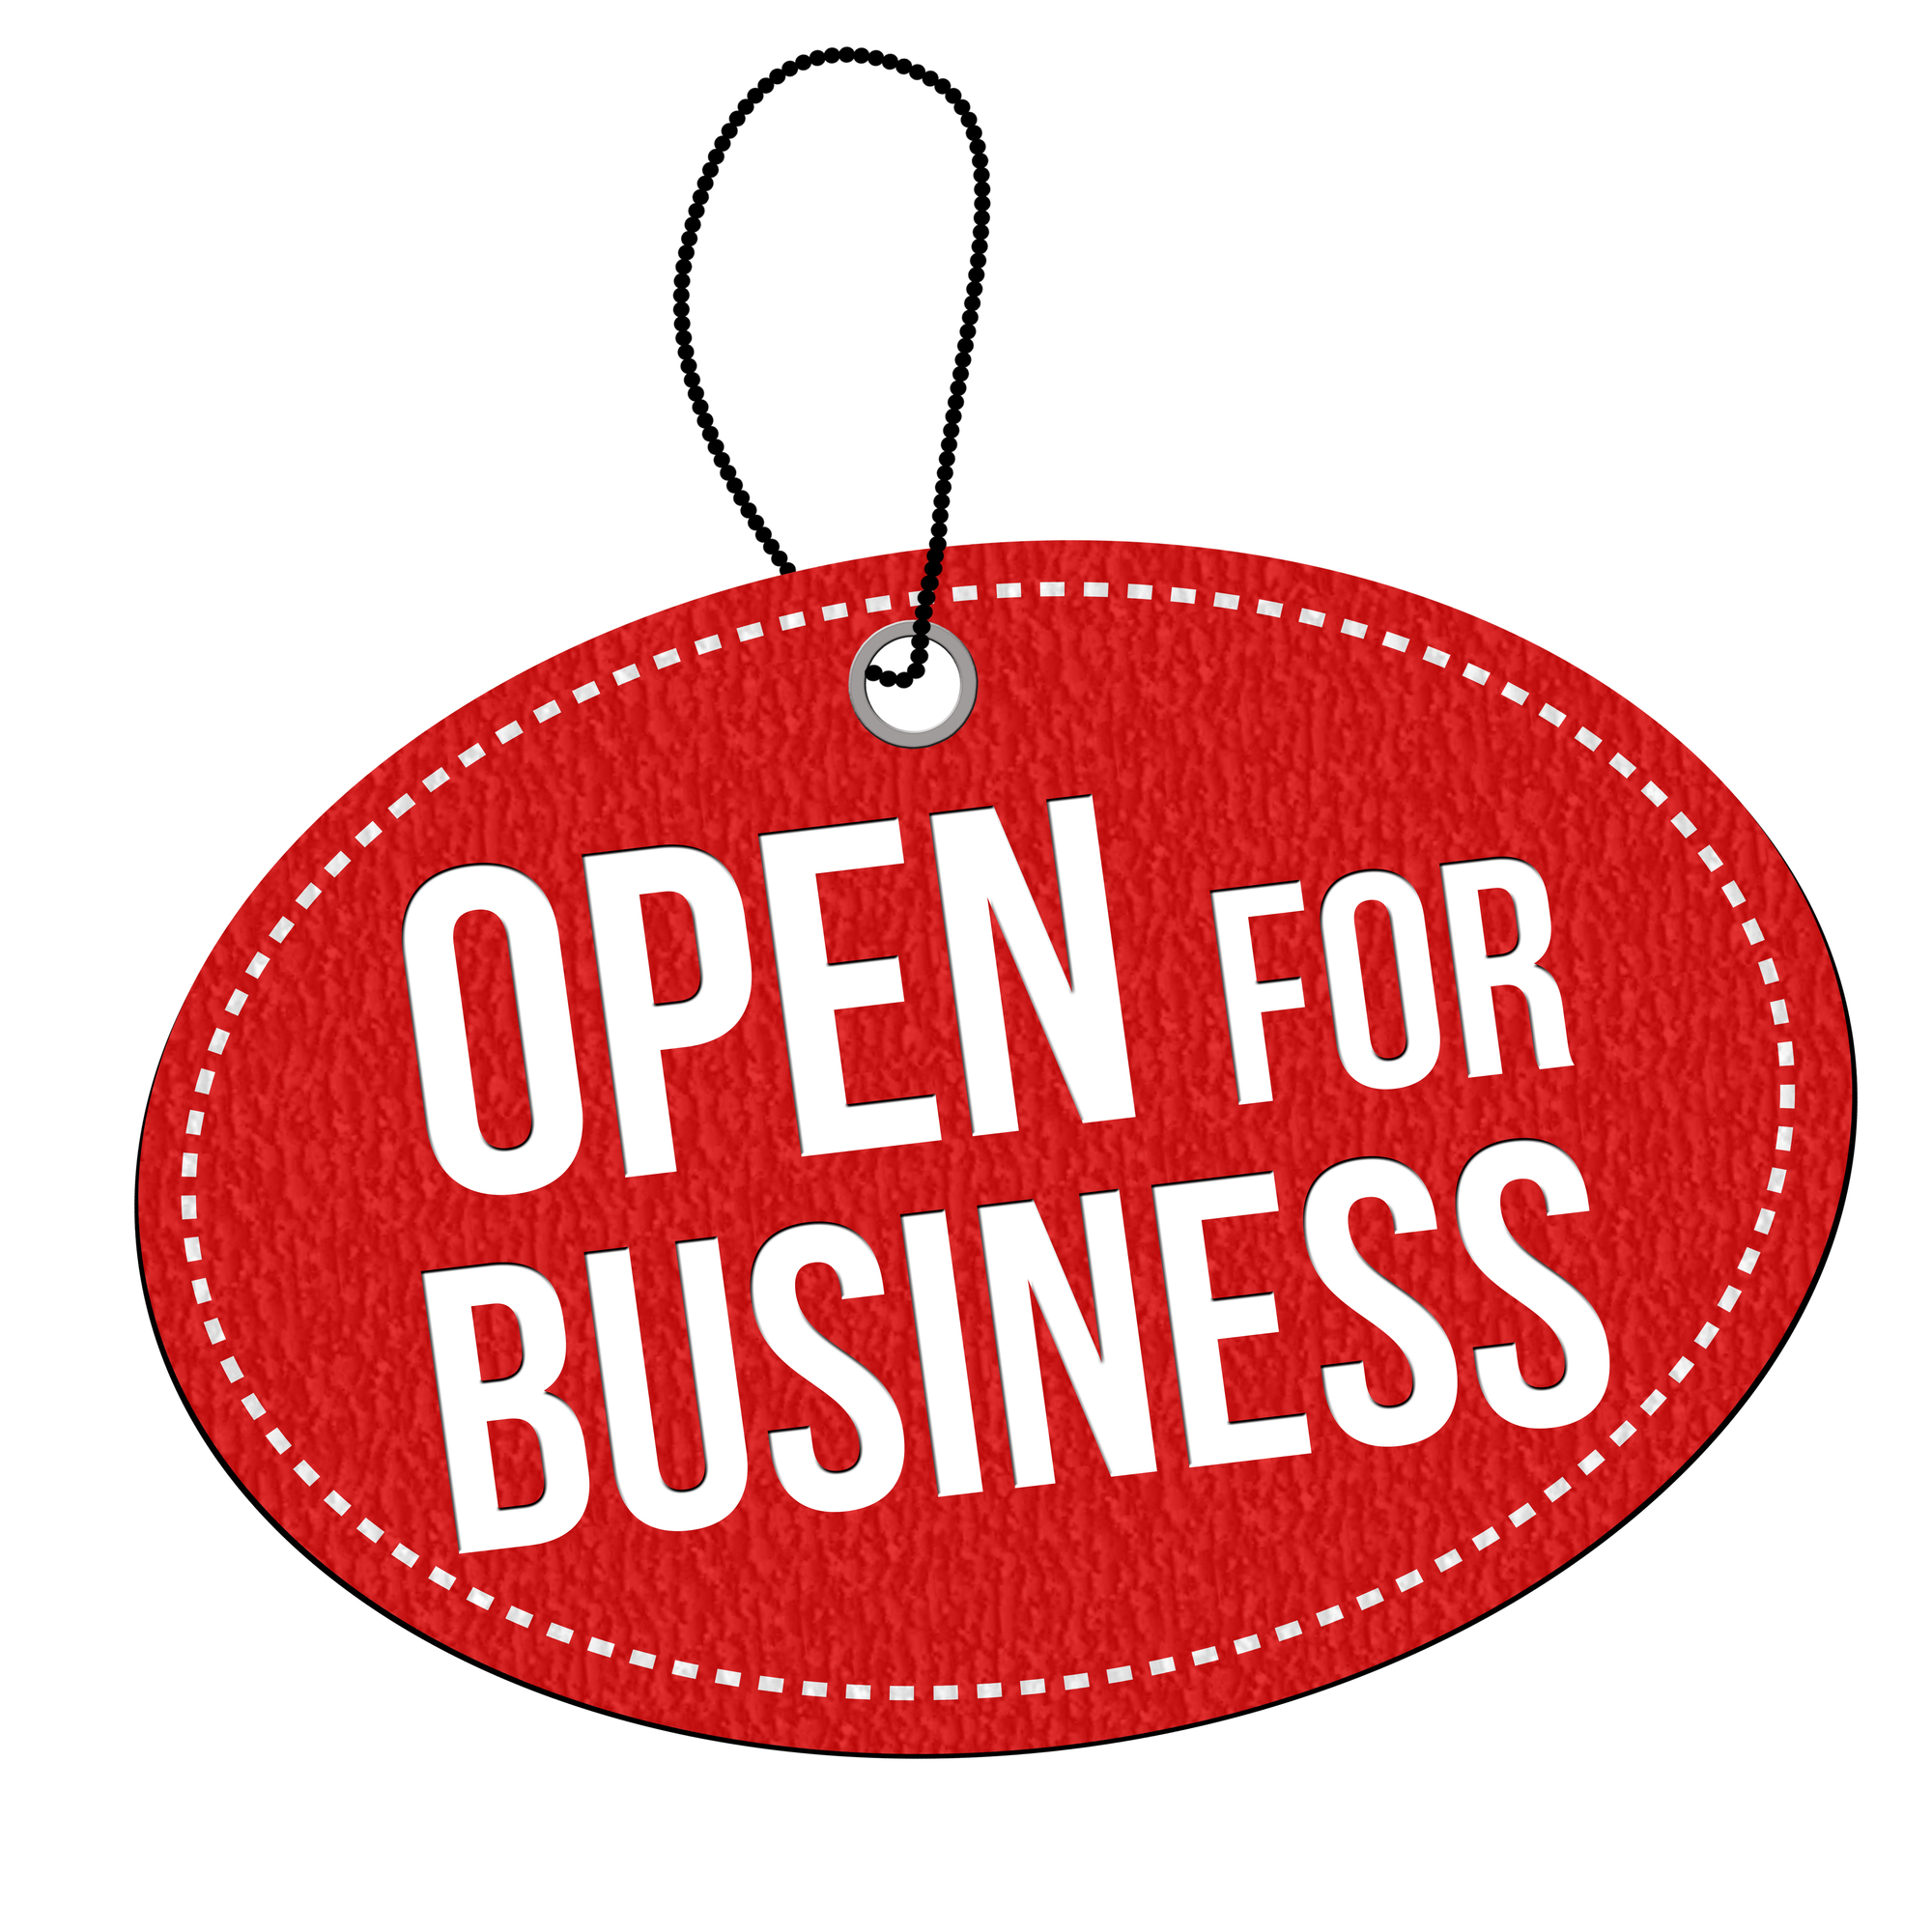 Open for business label